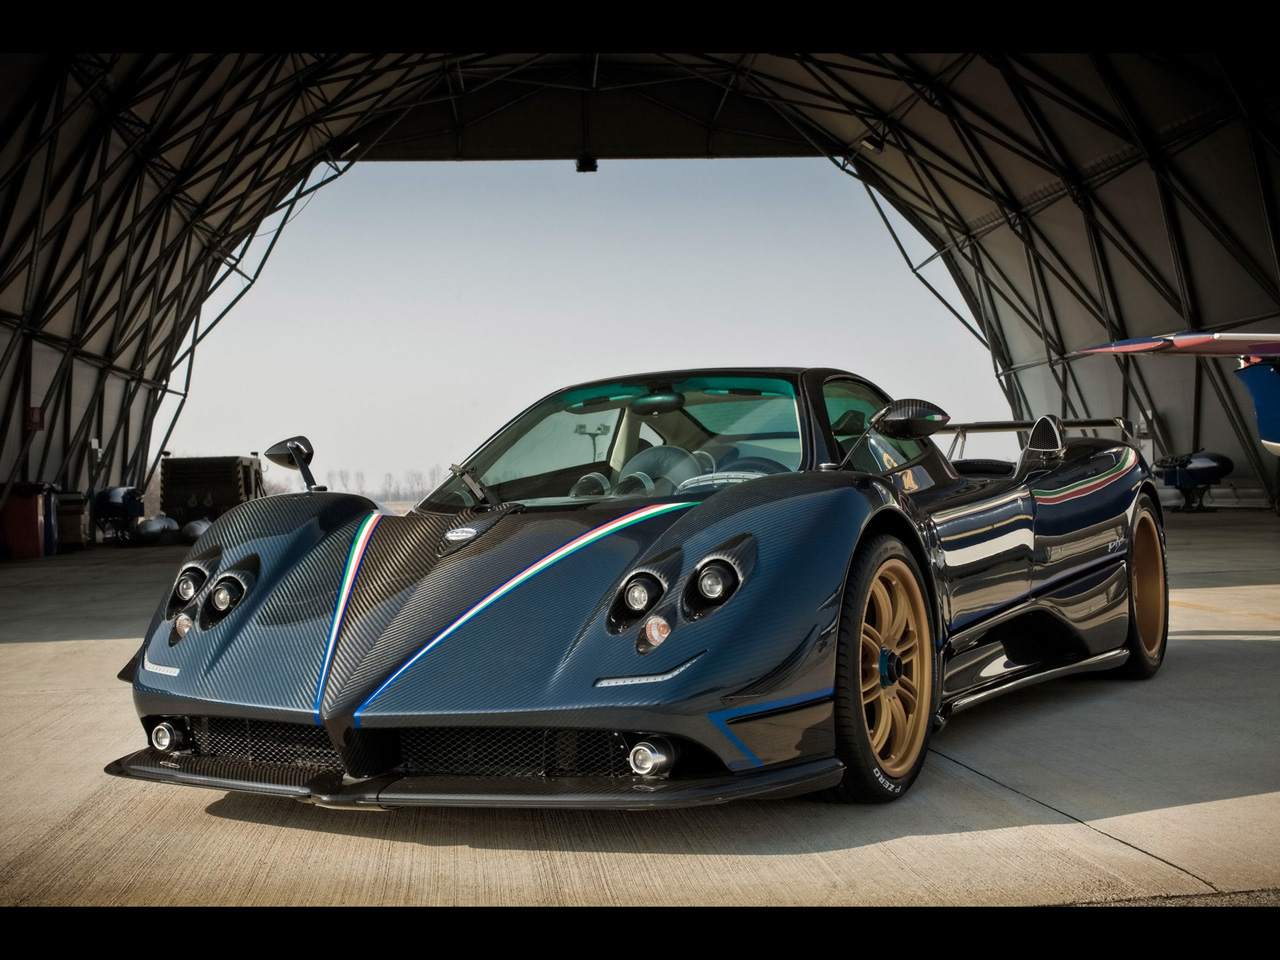 2010 Pagani Zonda Wallpapers-1080p